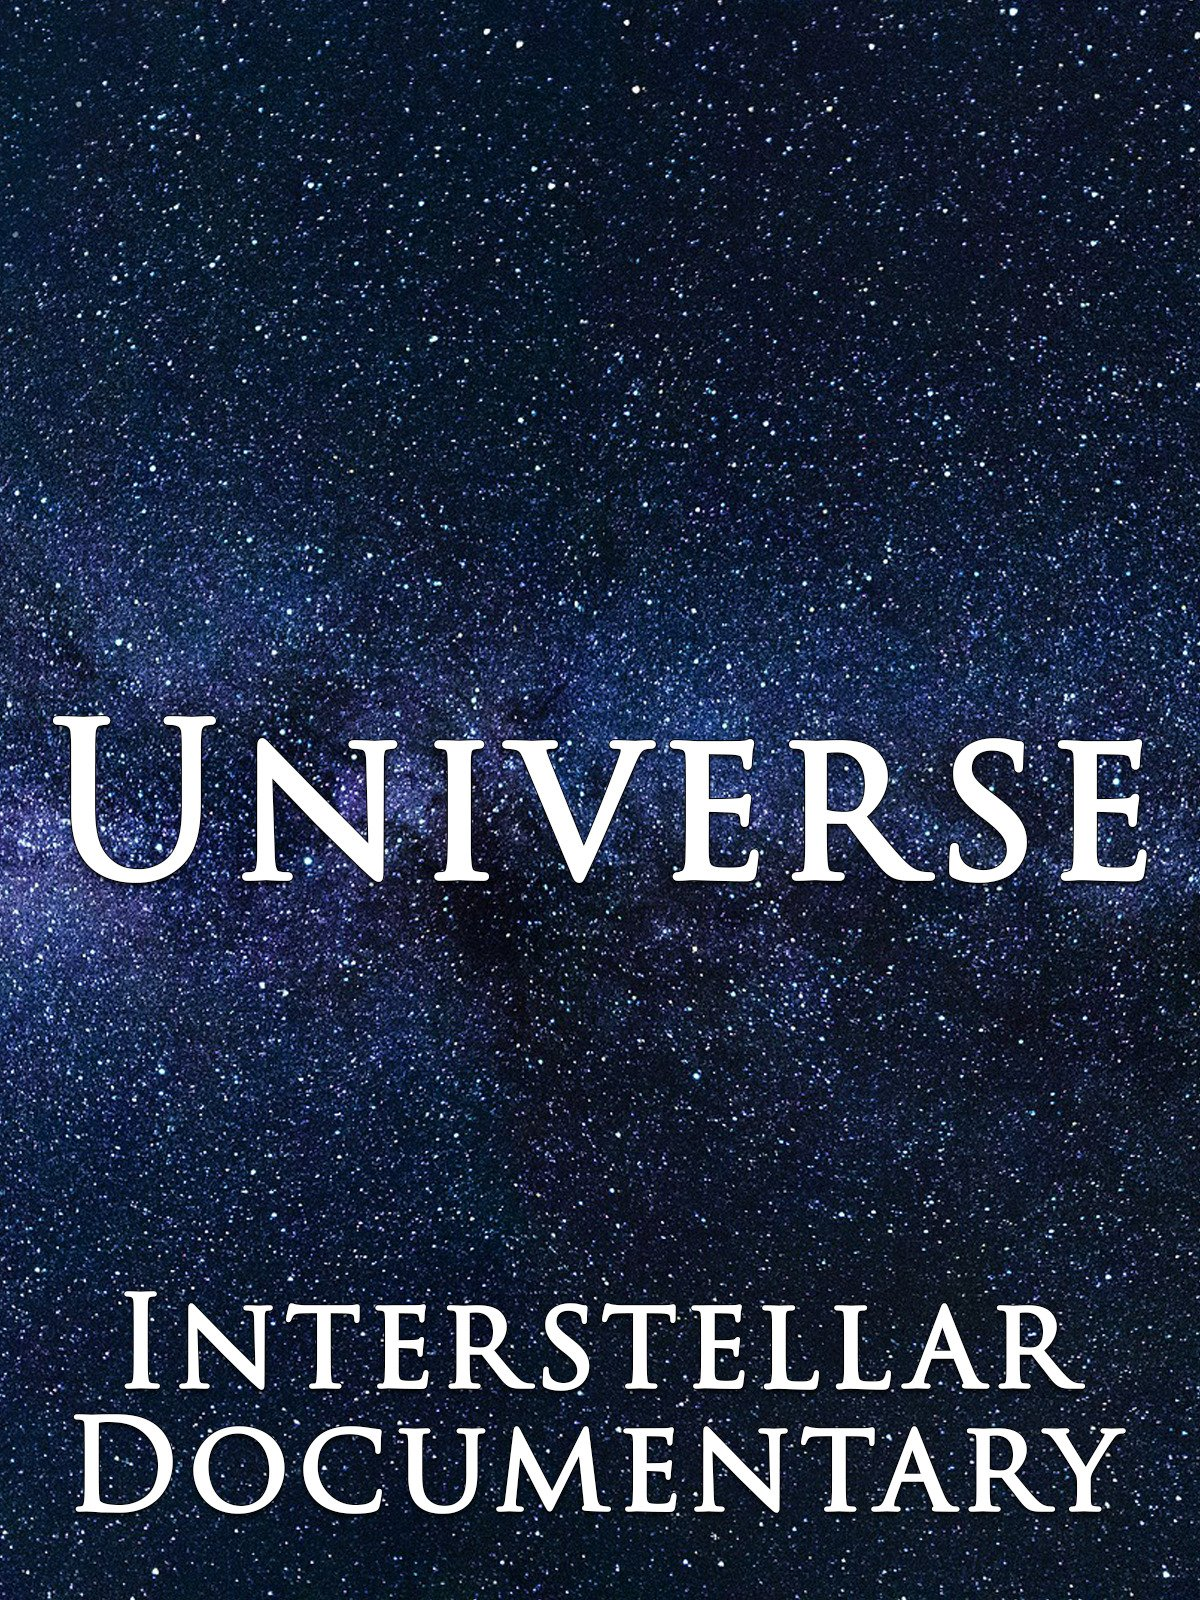 Universe Interstellar Documentary